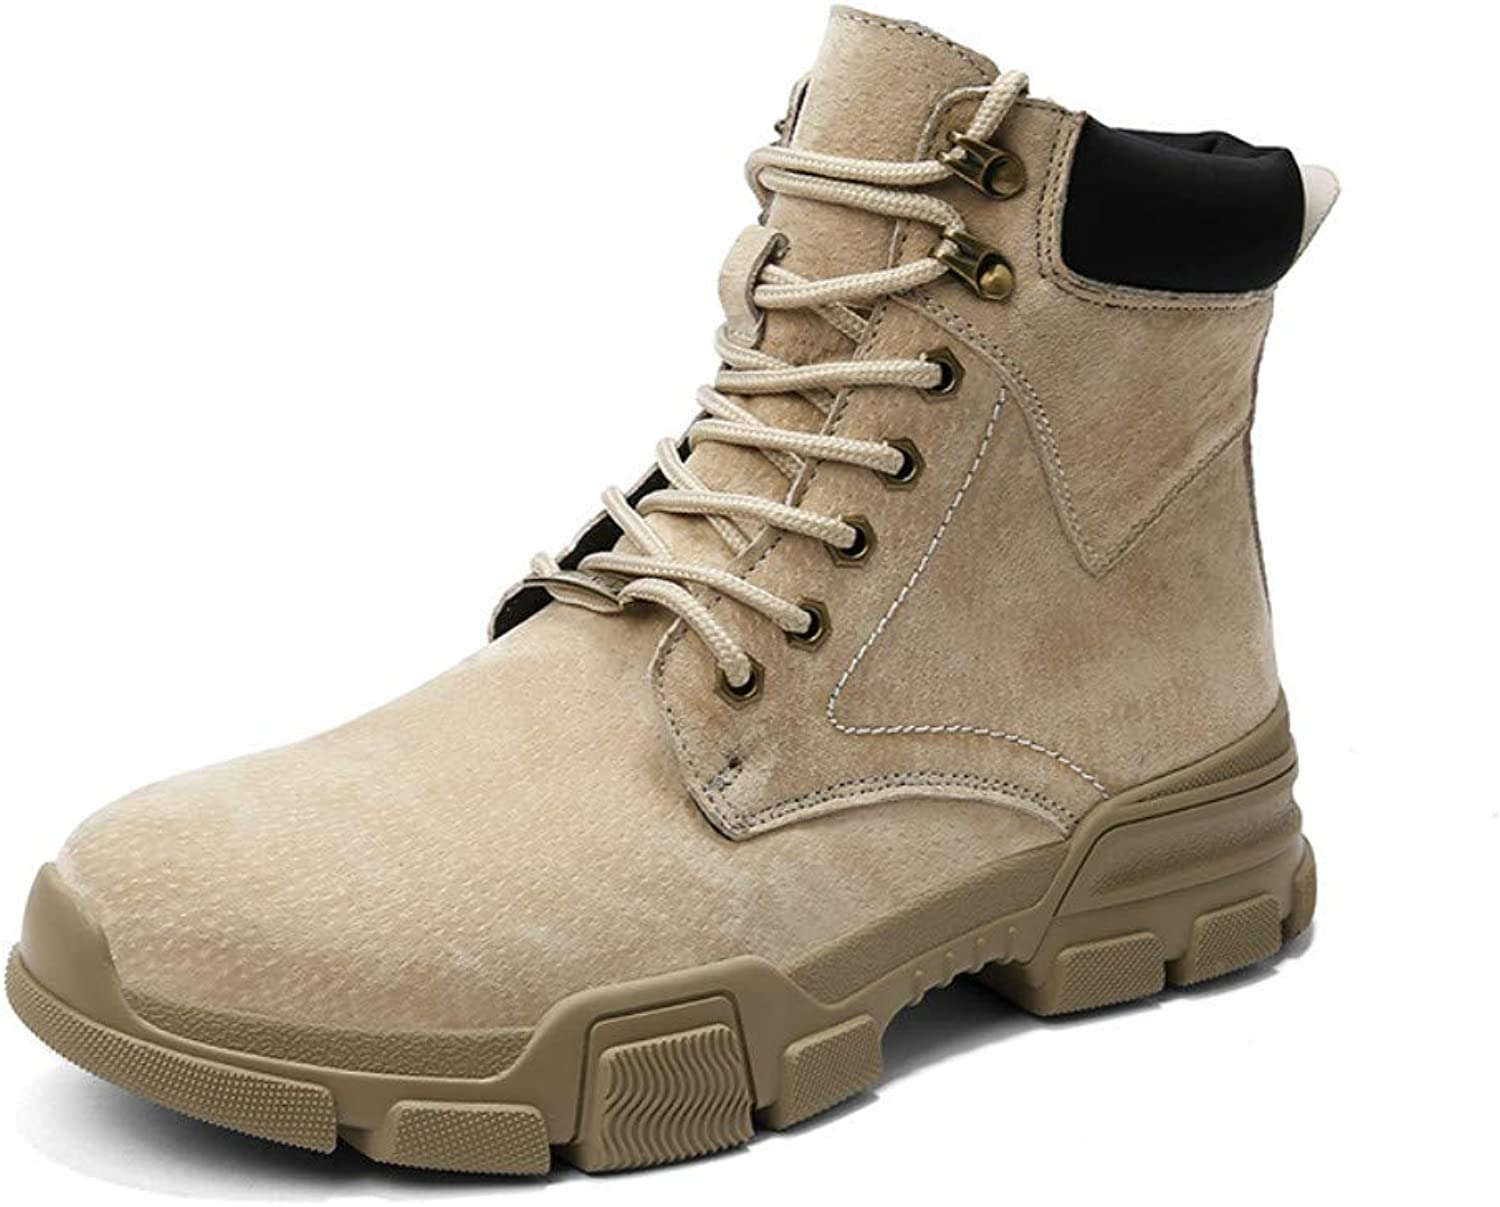 SuperDuo Men's Motorcycle Duty Work Boots - Lace Up Winter Ankle Boot Military Tactical Combat Hiking Boots